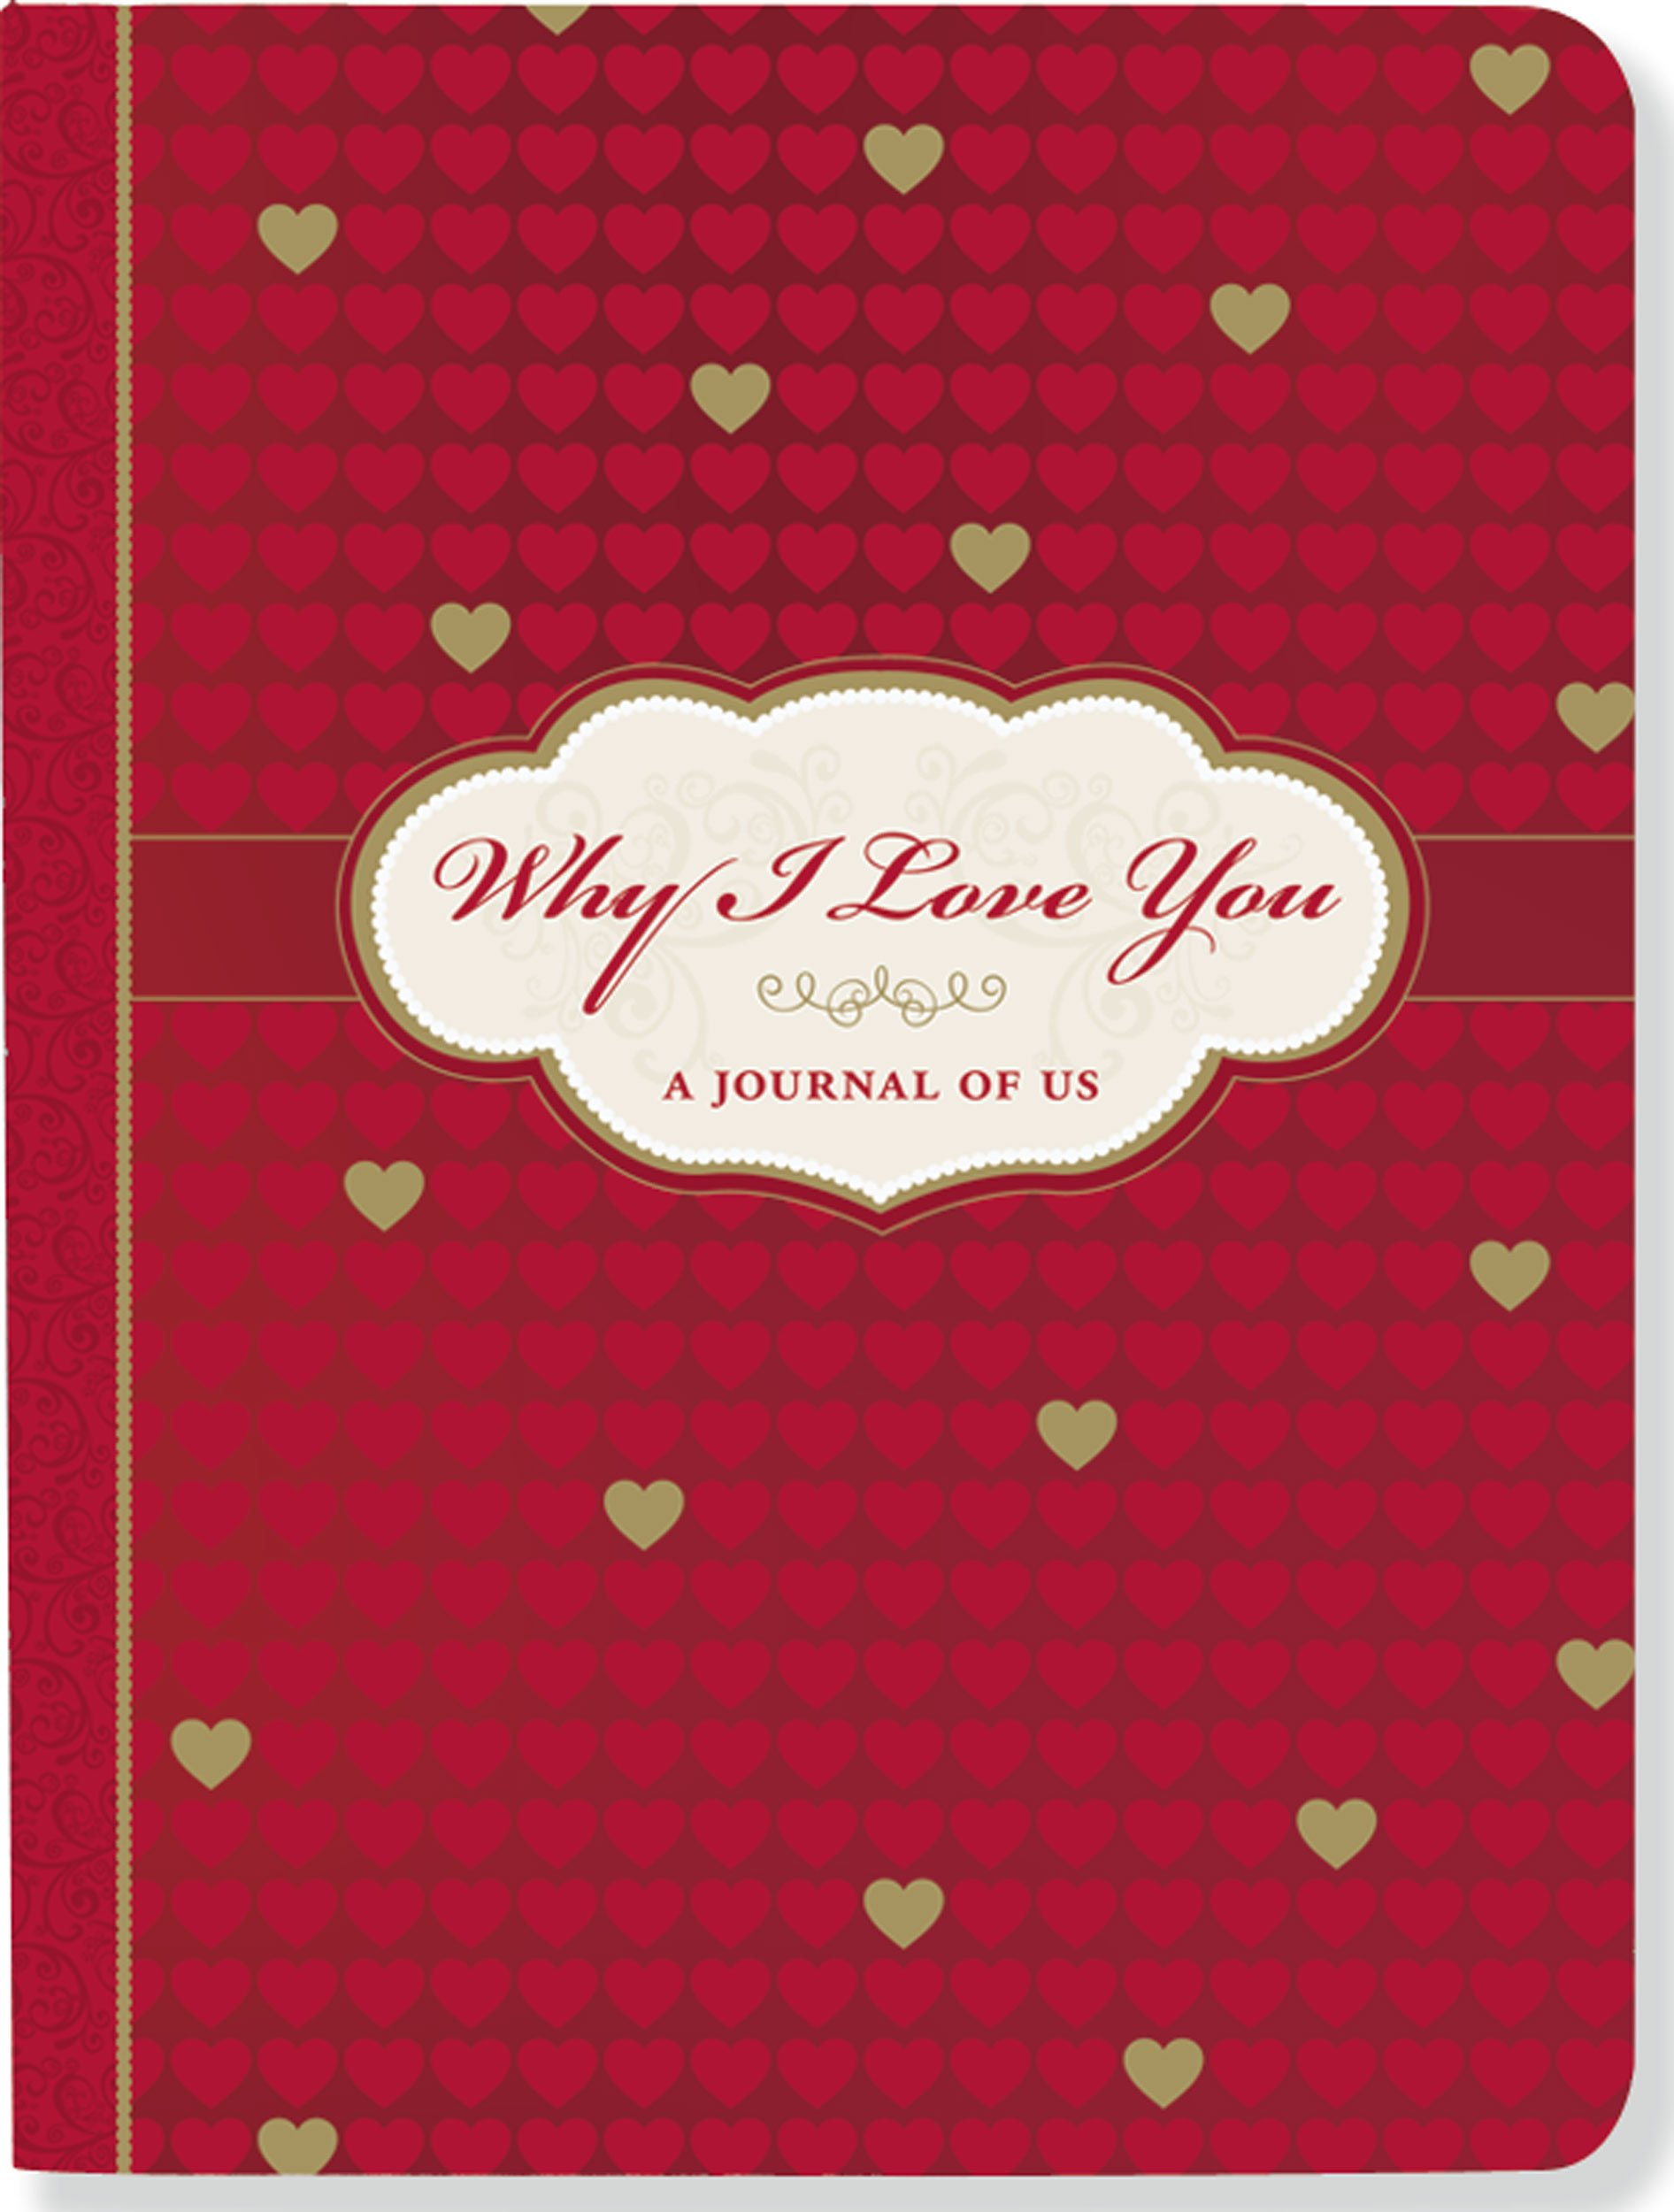 Why I Love You: A Journal of Us (What I Love About You Journal) Hardcover – by Suzanne Zenkel (Author)